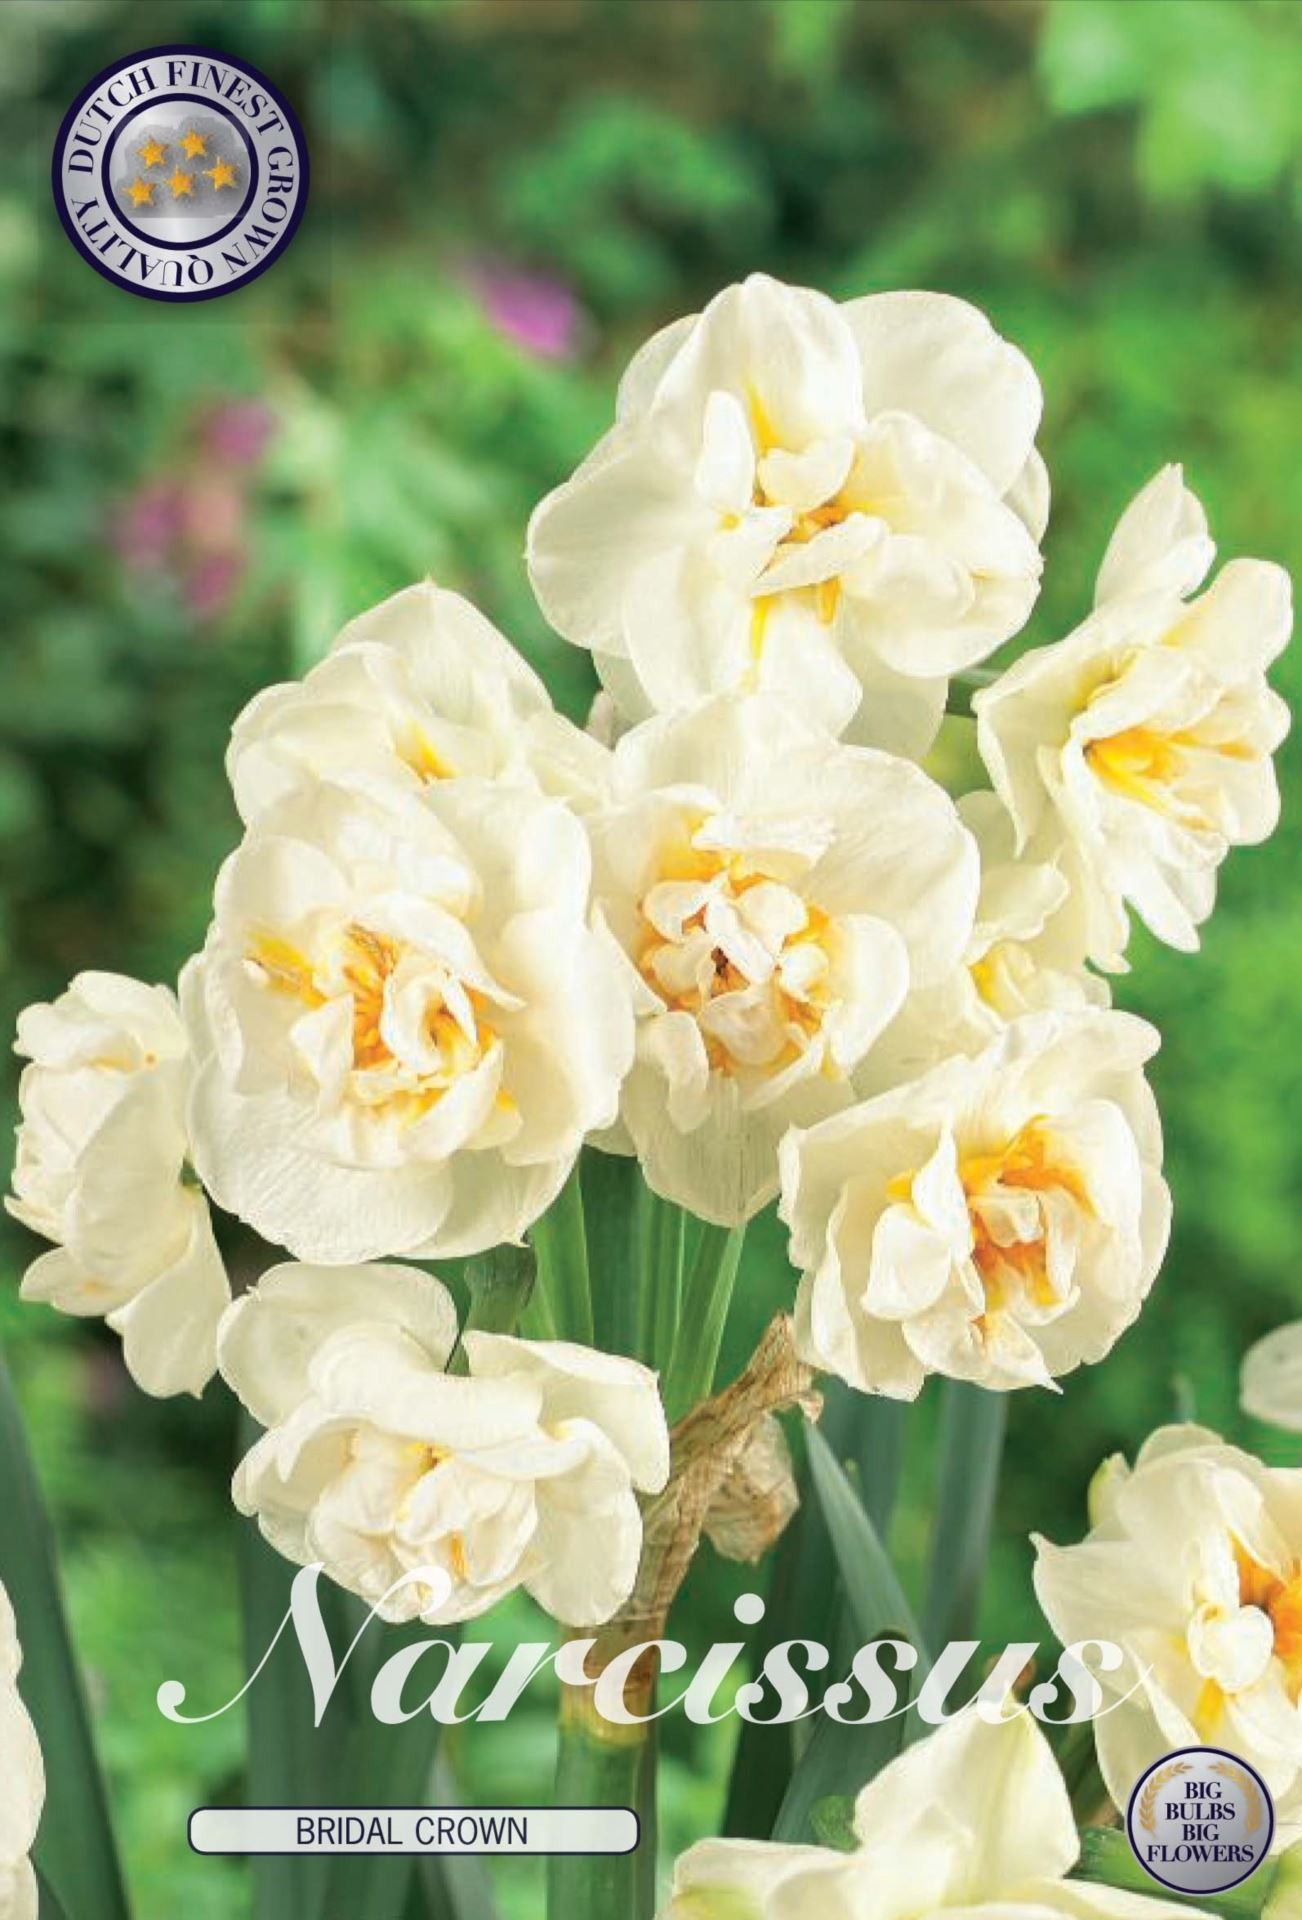 Narcissus Bridle Crown Bulbs